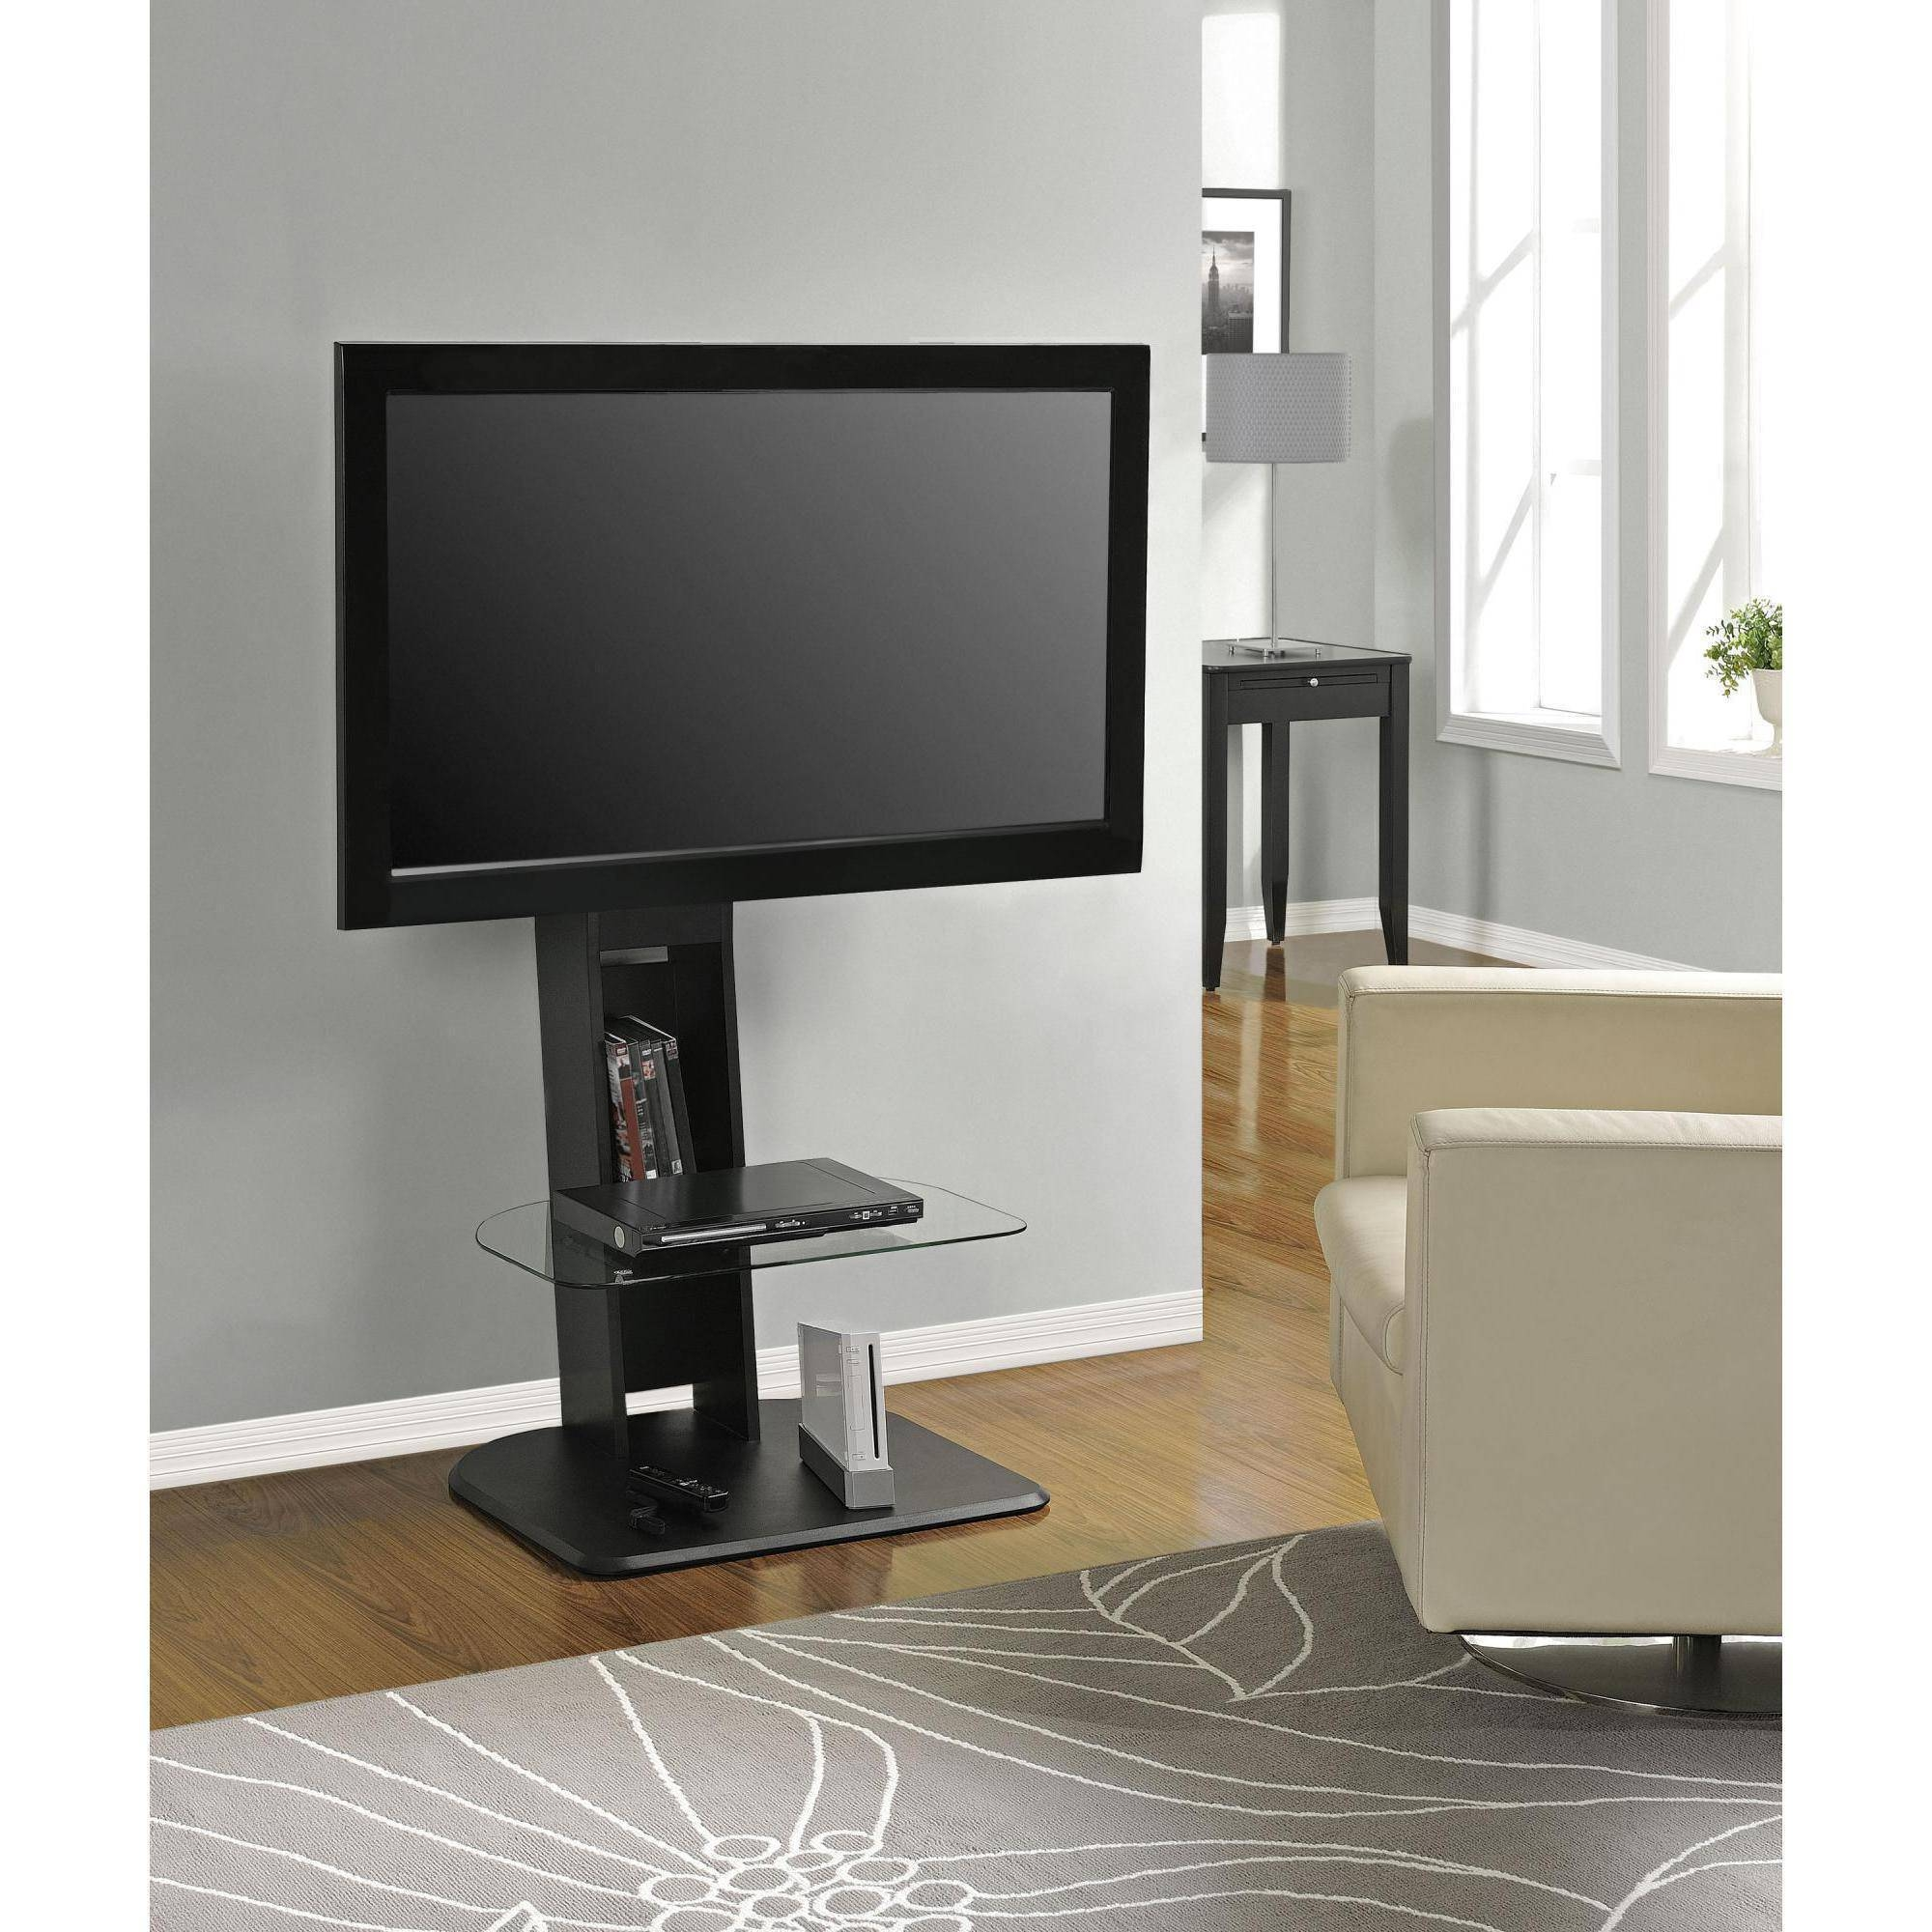 Atlantic Furniture Tabletop Tv Stand, Black - Walmart intended for Long Tv Stands Furniture (Image 2 of 15)